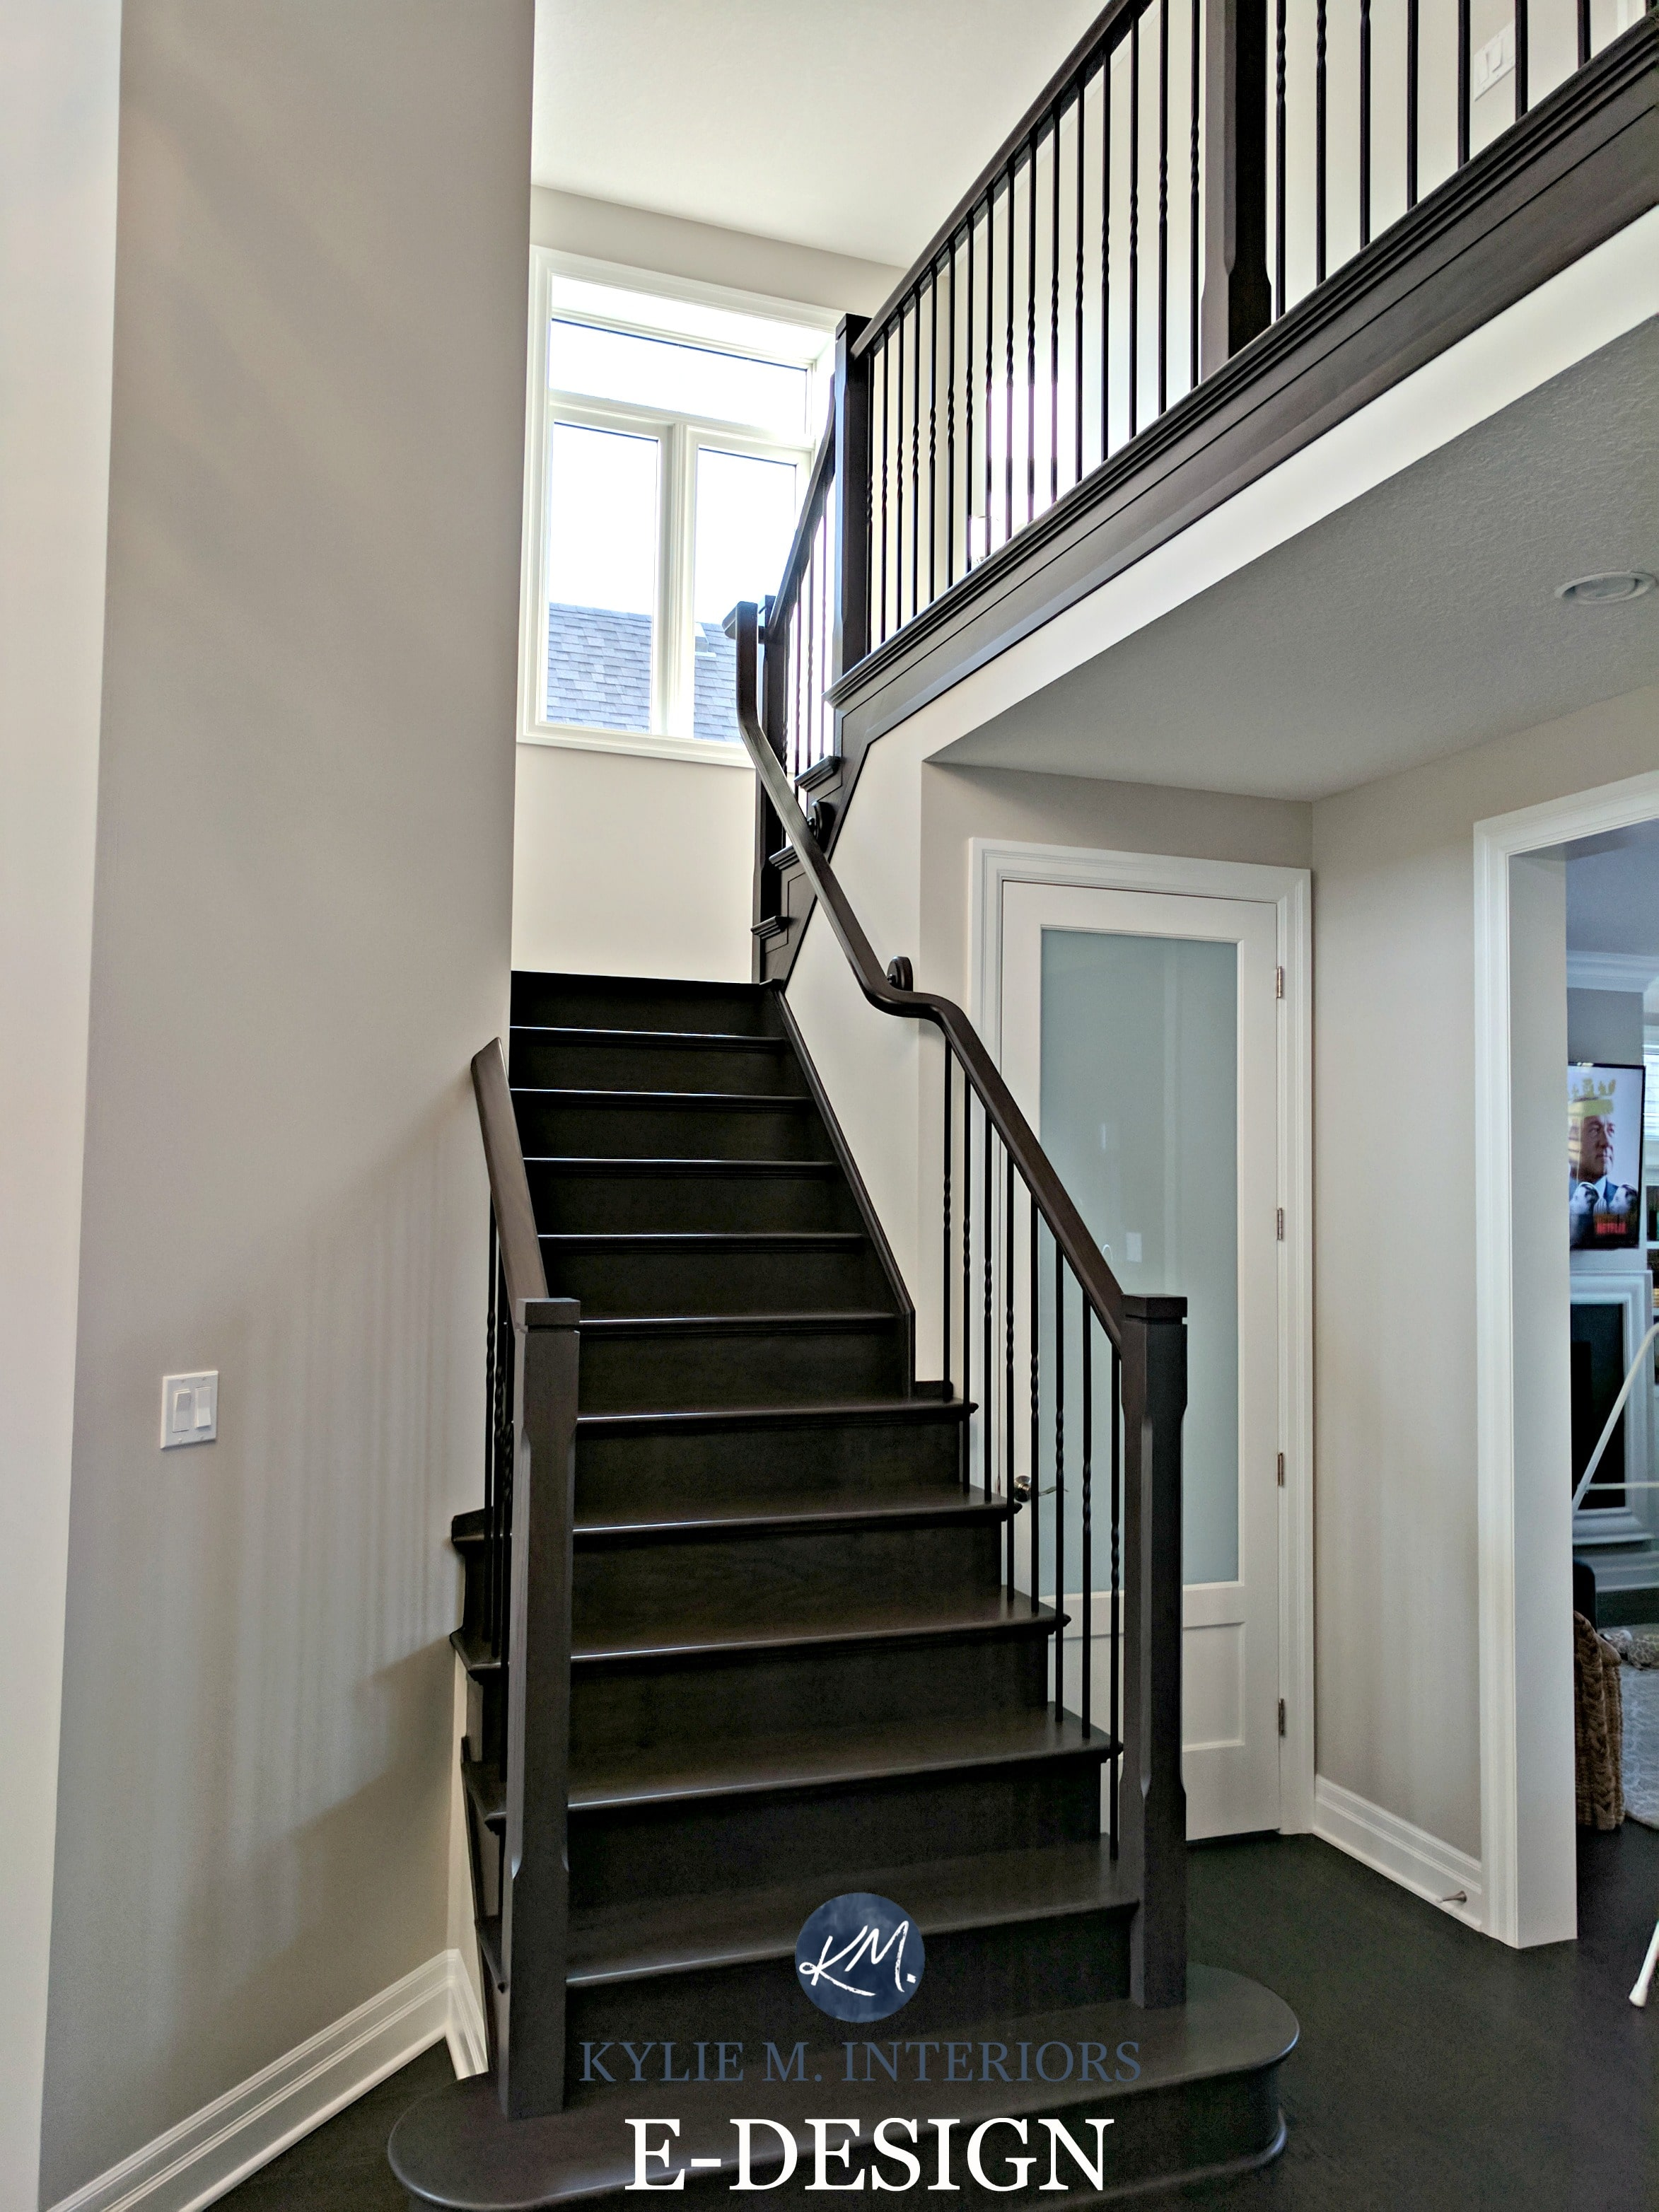 Benjamin Moore Collingwood In A Staircase With Dark Wood